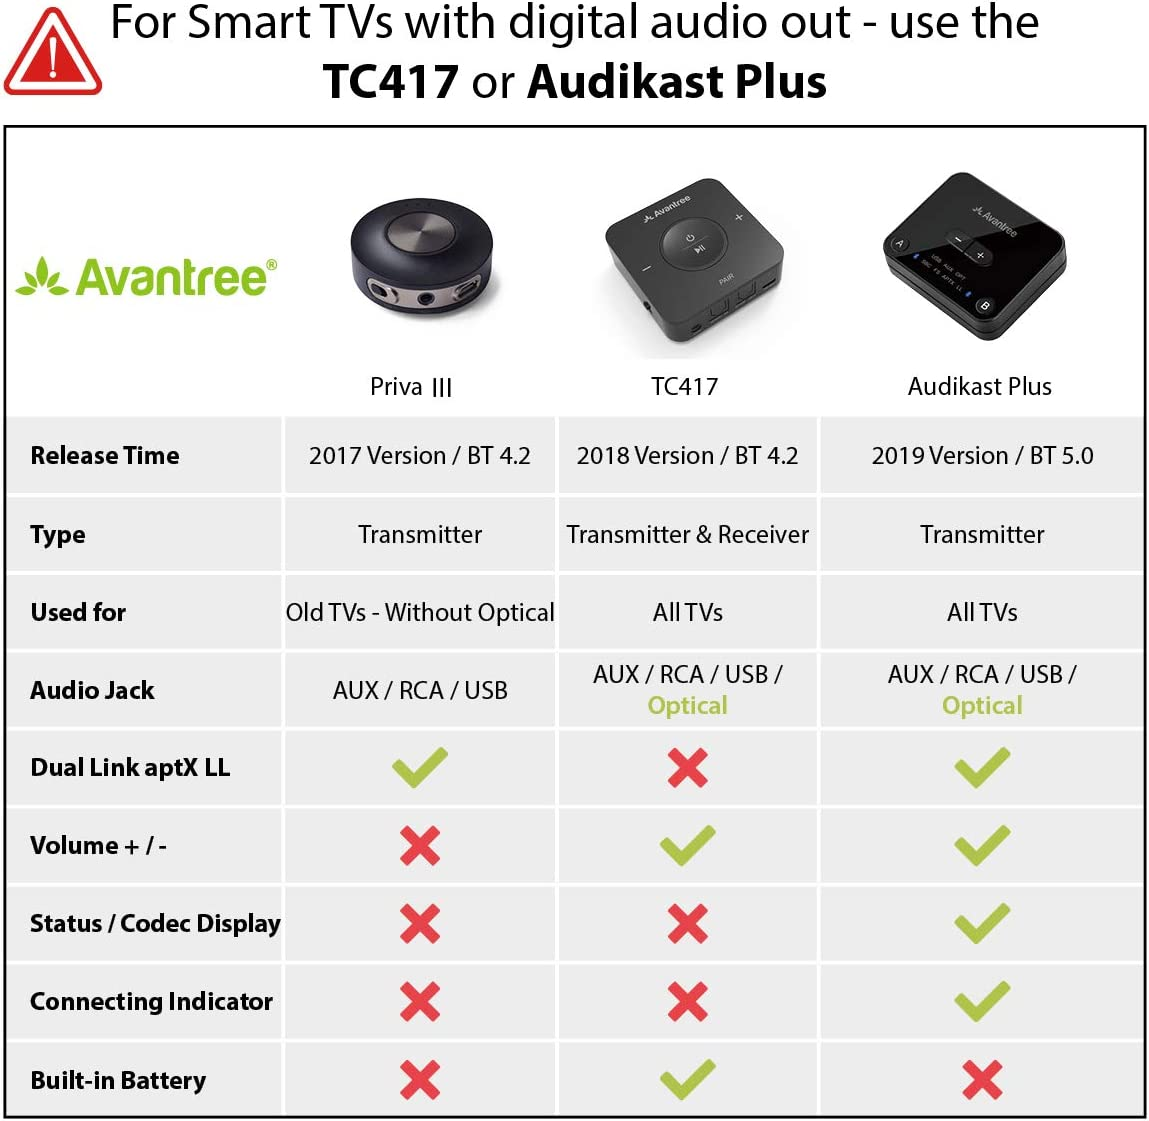 Avantree Priva III aptX Low Latency Bluetooth Audio Transmitter for TV PC 3.5mm AUX, RCA, PC USB Audio, NOT Optical 100ft Long Range, Wireless Audio Adapter, Dual Link for Two Headphones, No Delay